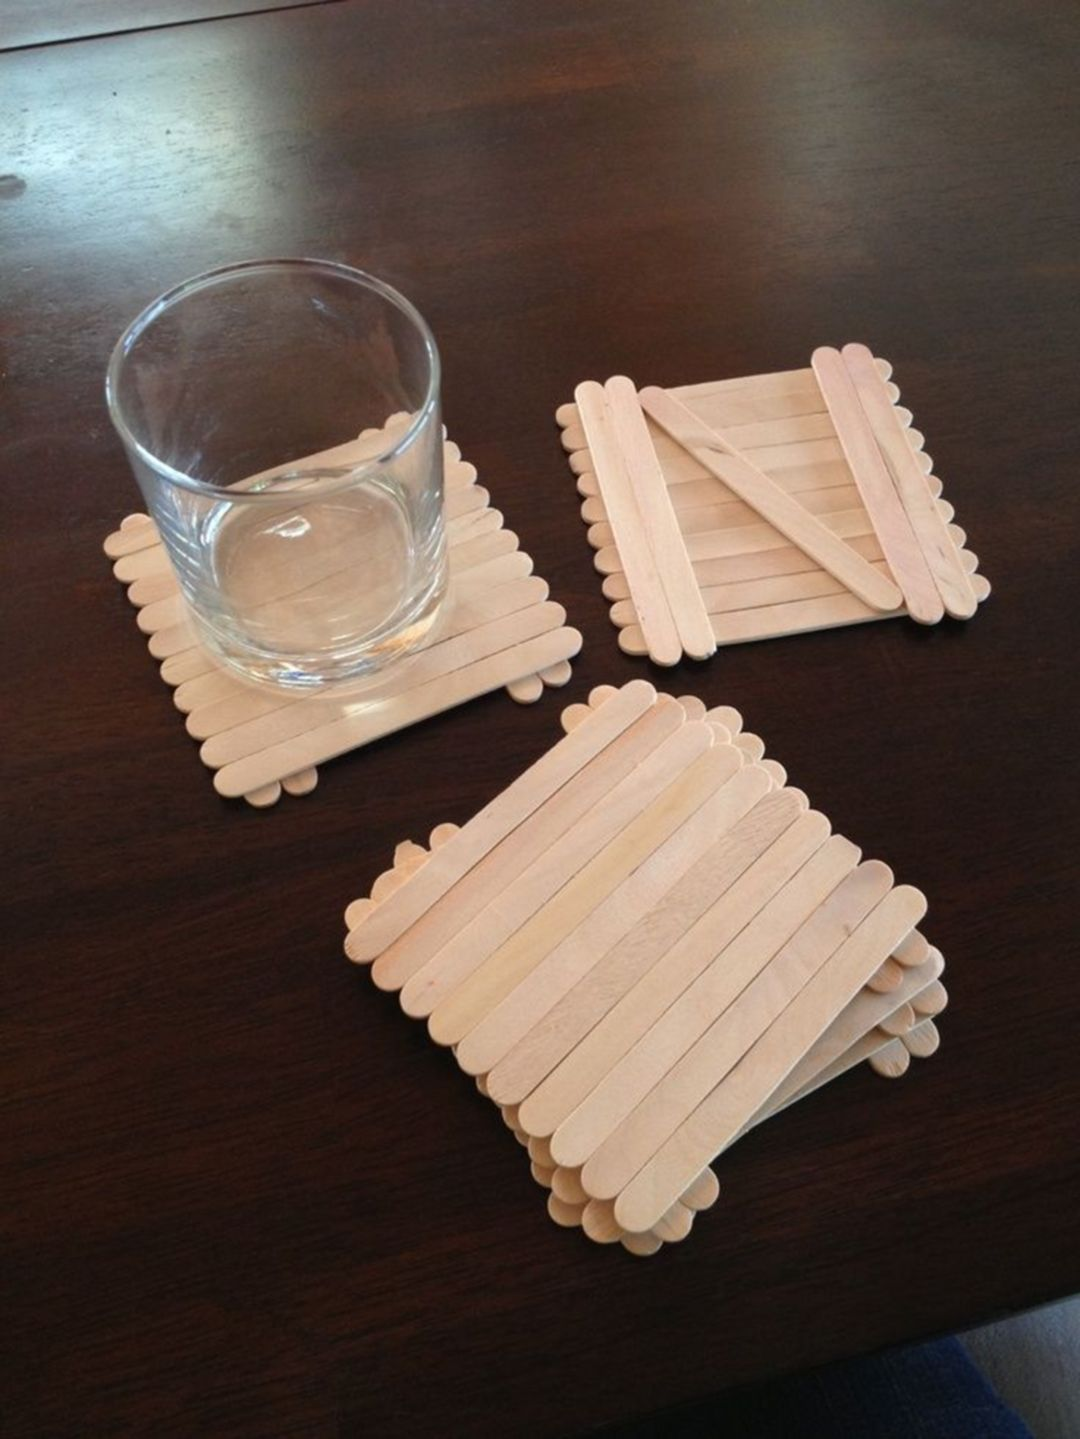 30 DIY Popsicle Stick Decor Ideas To Increase Your Interior Home #diyinterior